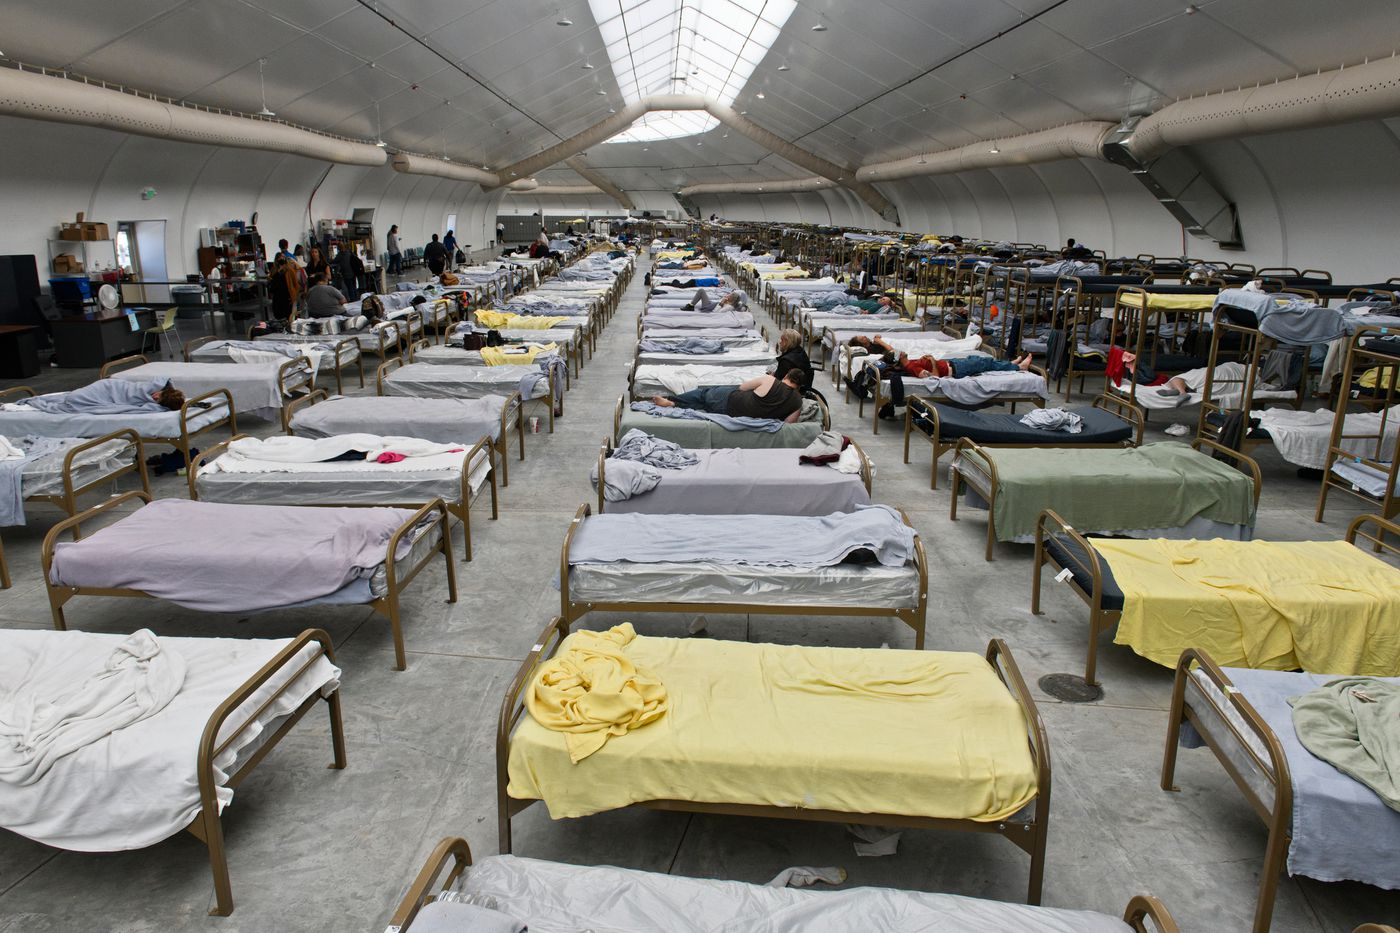 The Nevada CARES Campus was built to shelter 600 people in Reno, Nevada. In late June, more than 500 people were staying there.(Marc Lester / ADN)